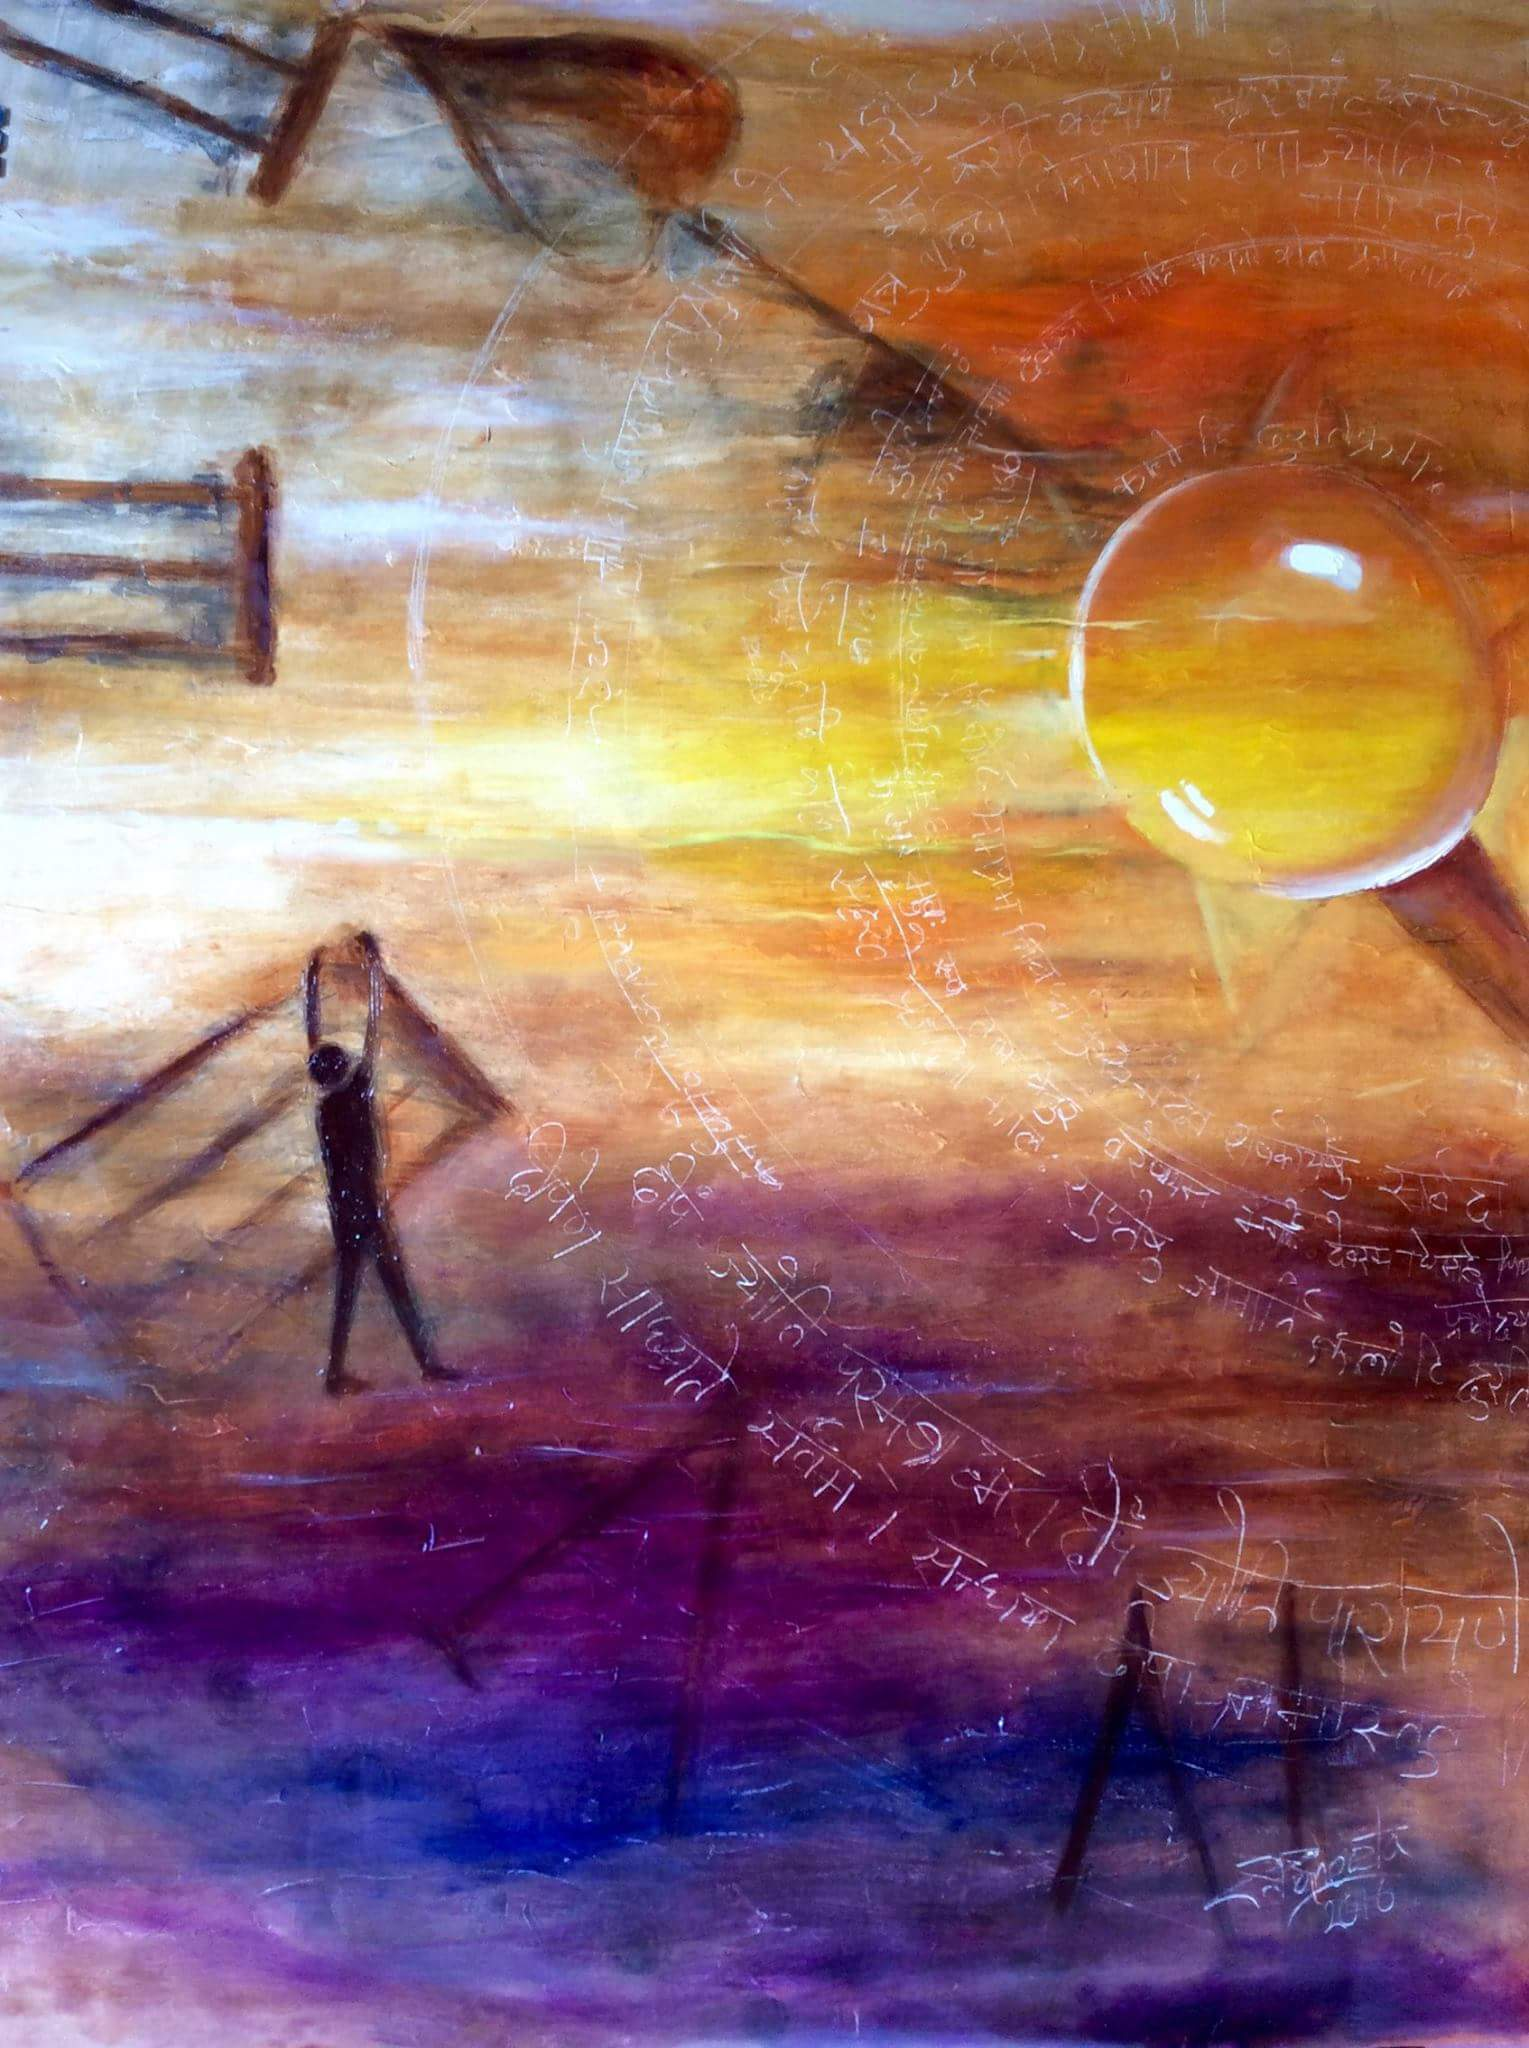 An abstract painting of a figure in front of an orb with undecipherable scribblings.